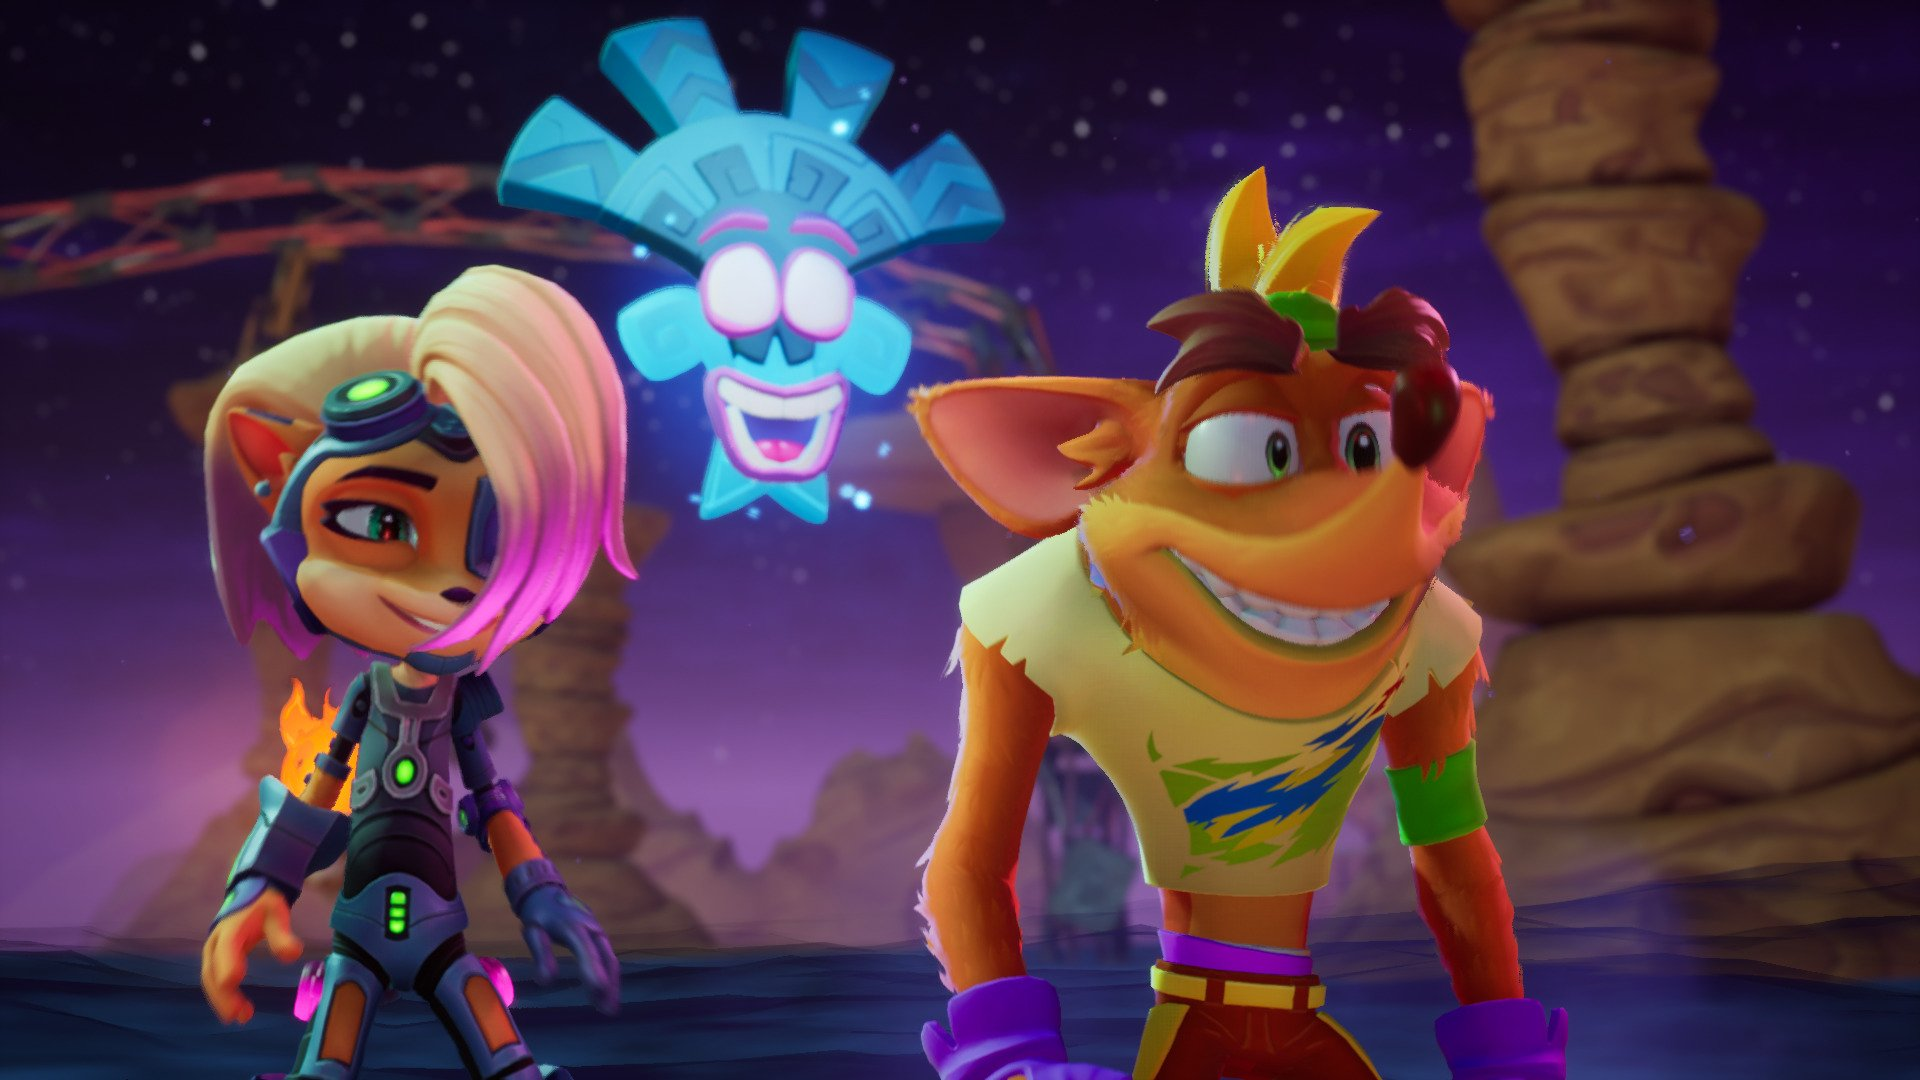 Screenshot for the game Crash Bandicoot 4: It's About Time